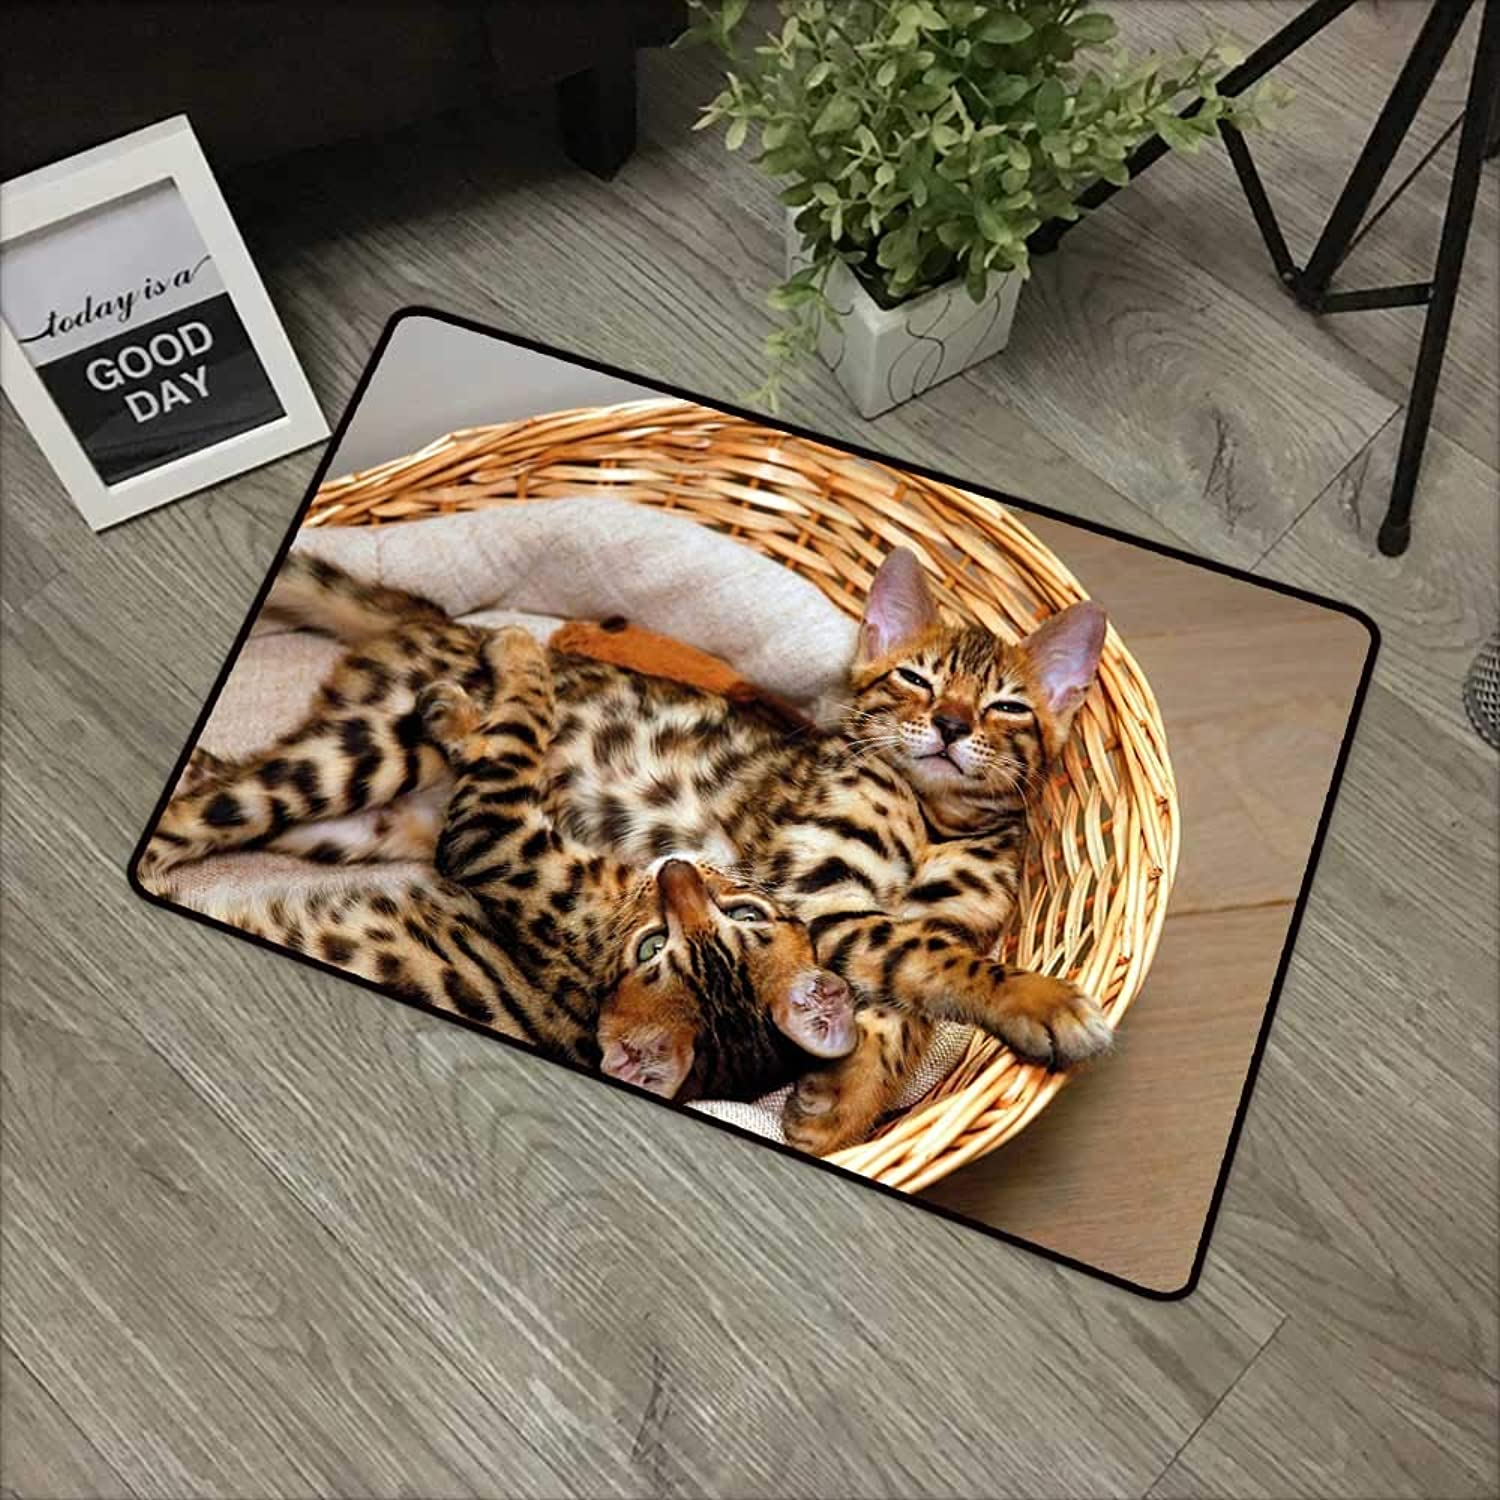 Pool Anti-Slip Door mat W35 x L59 INCH Kitten,Little Bengal Cats in Basket Cuddly Purebred Kitties Domestic Feline,Brown Light Brown Beige Non-Slip Door Mat Carpet